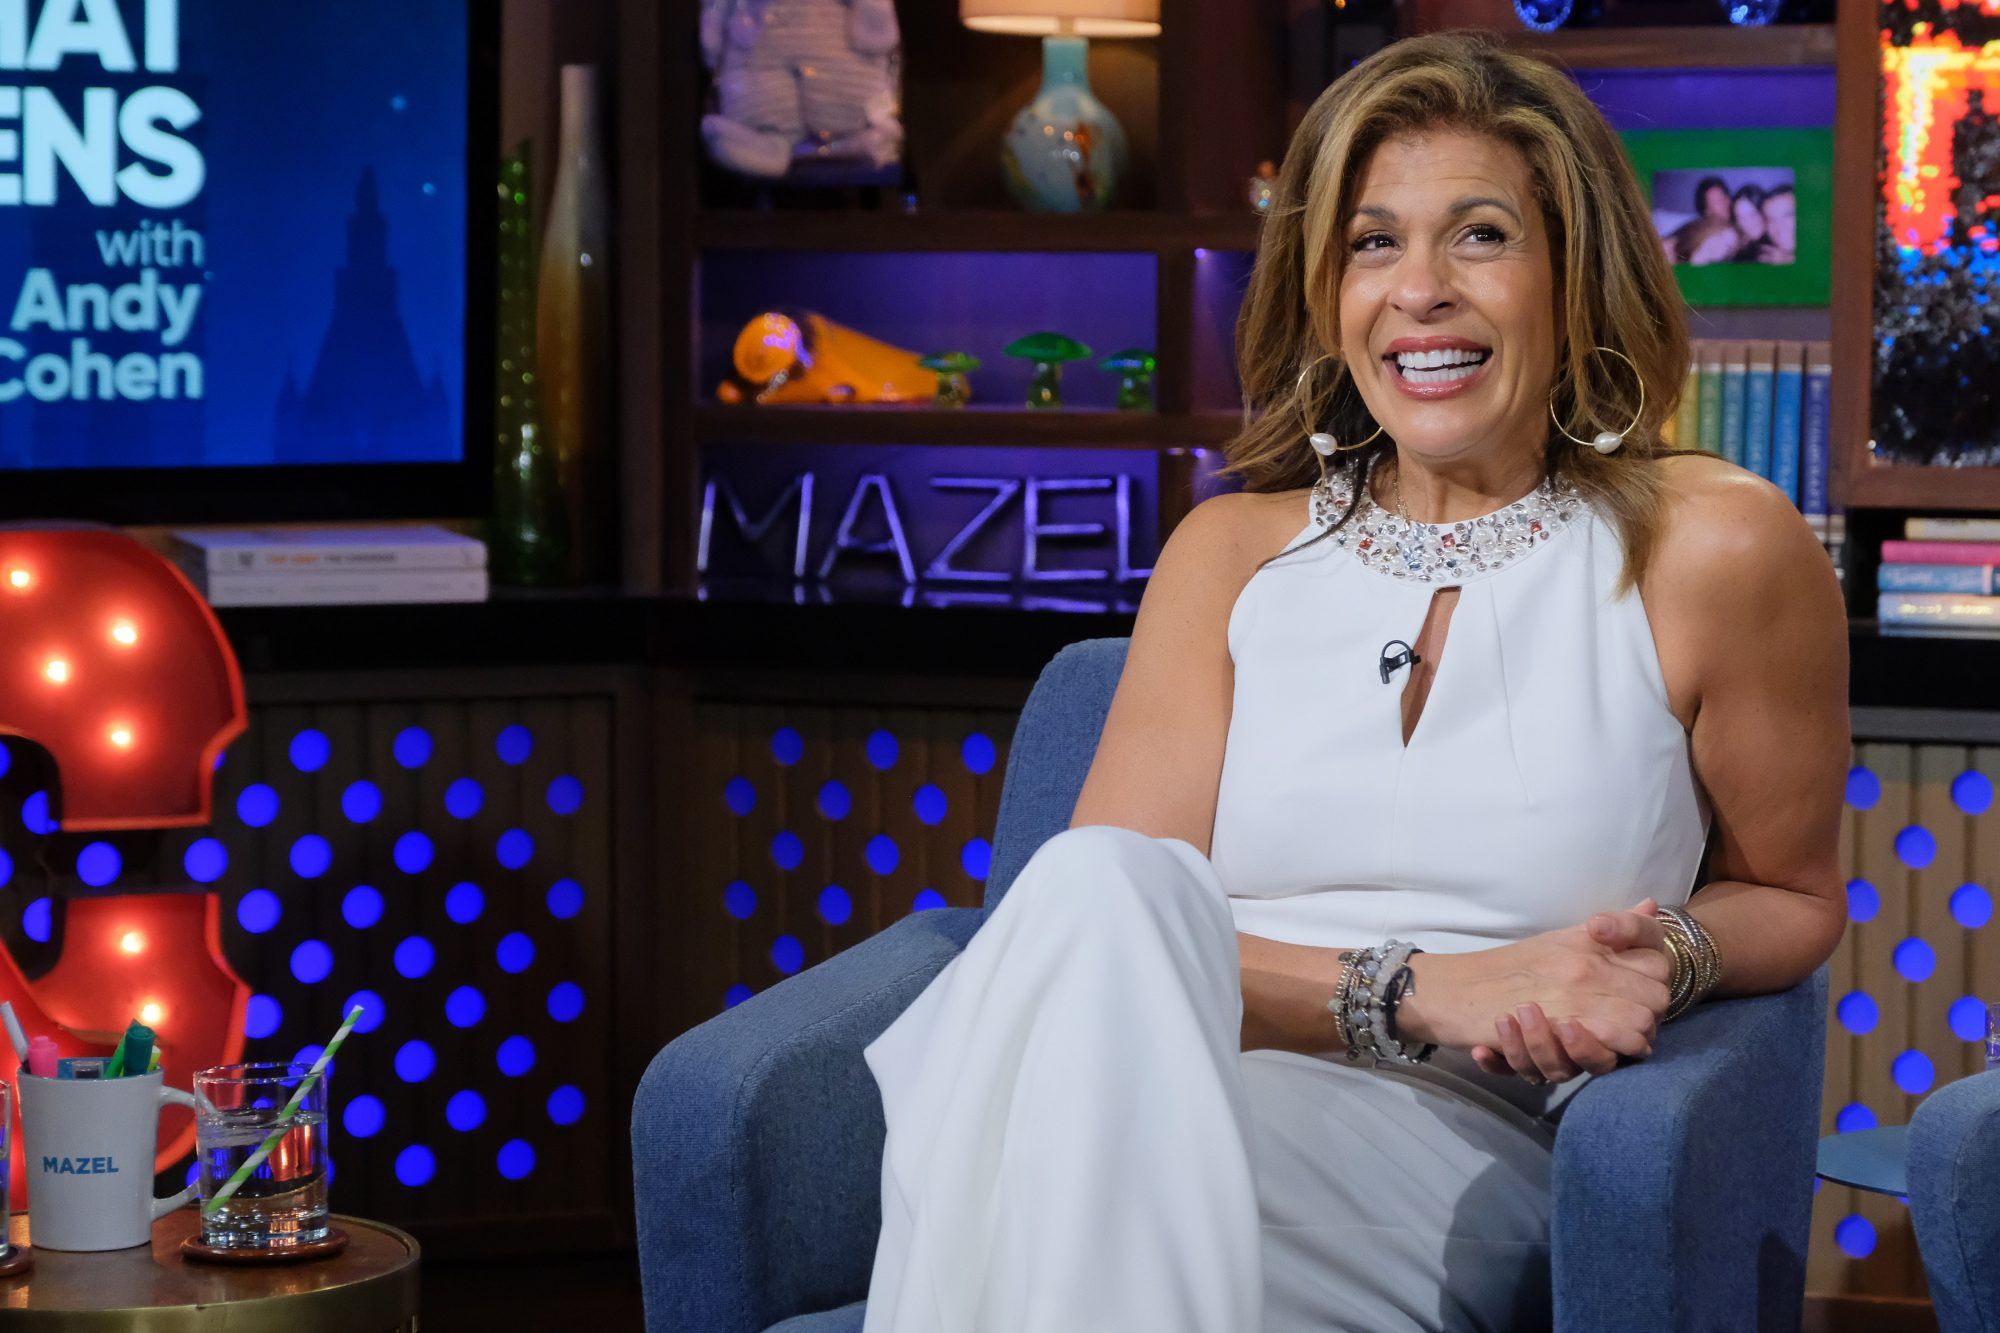 Hoda Kotb Watch What Happens Live With Andy Cohen - Season 17